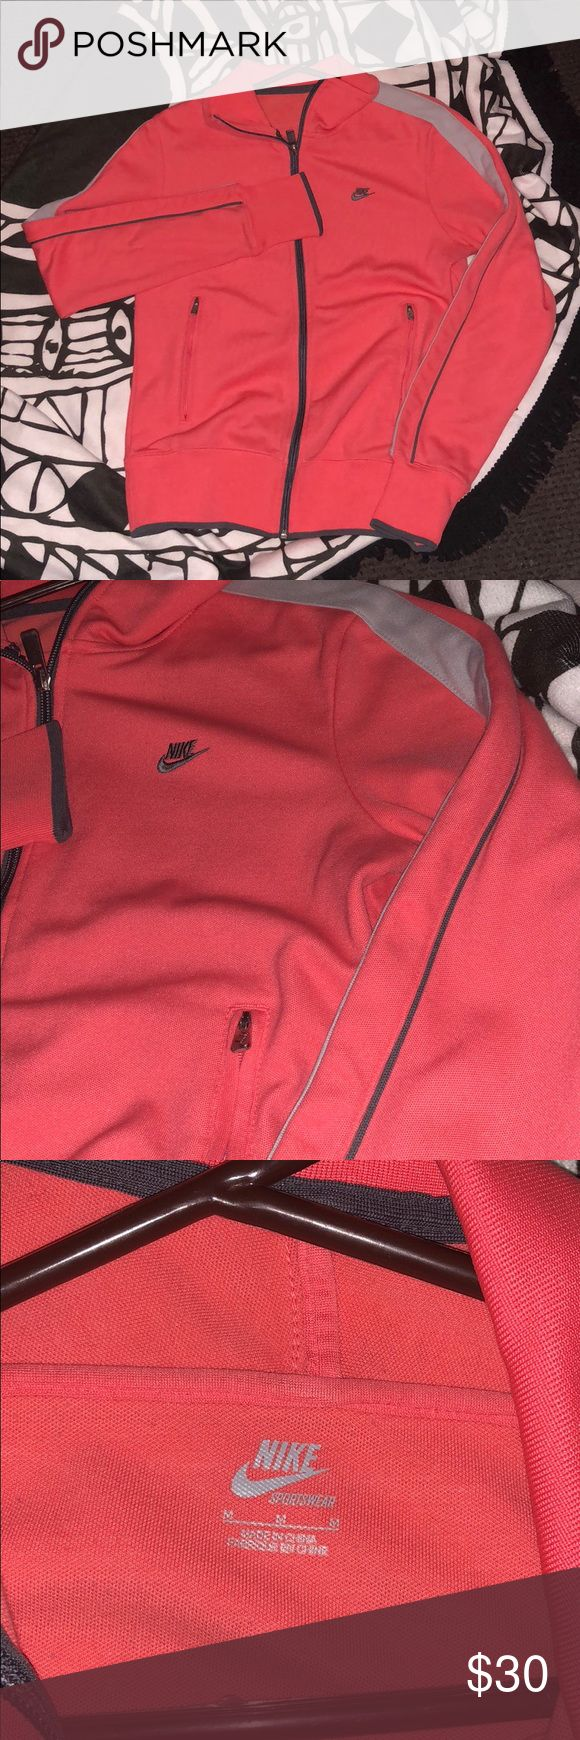 Nike Fleece Jacket Pink Nike Fleece Jacket  Size Medium   In good condition  Offers Welcome  I can put a picture with me with it (just ask) Nike Sweaters